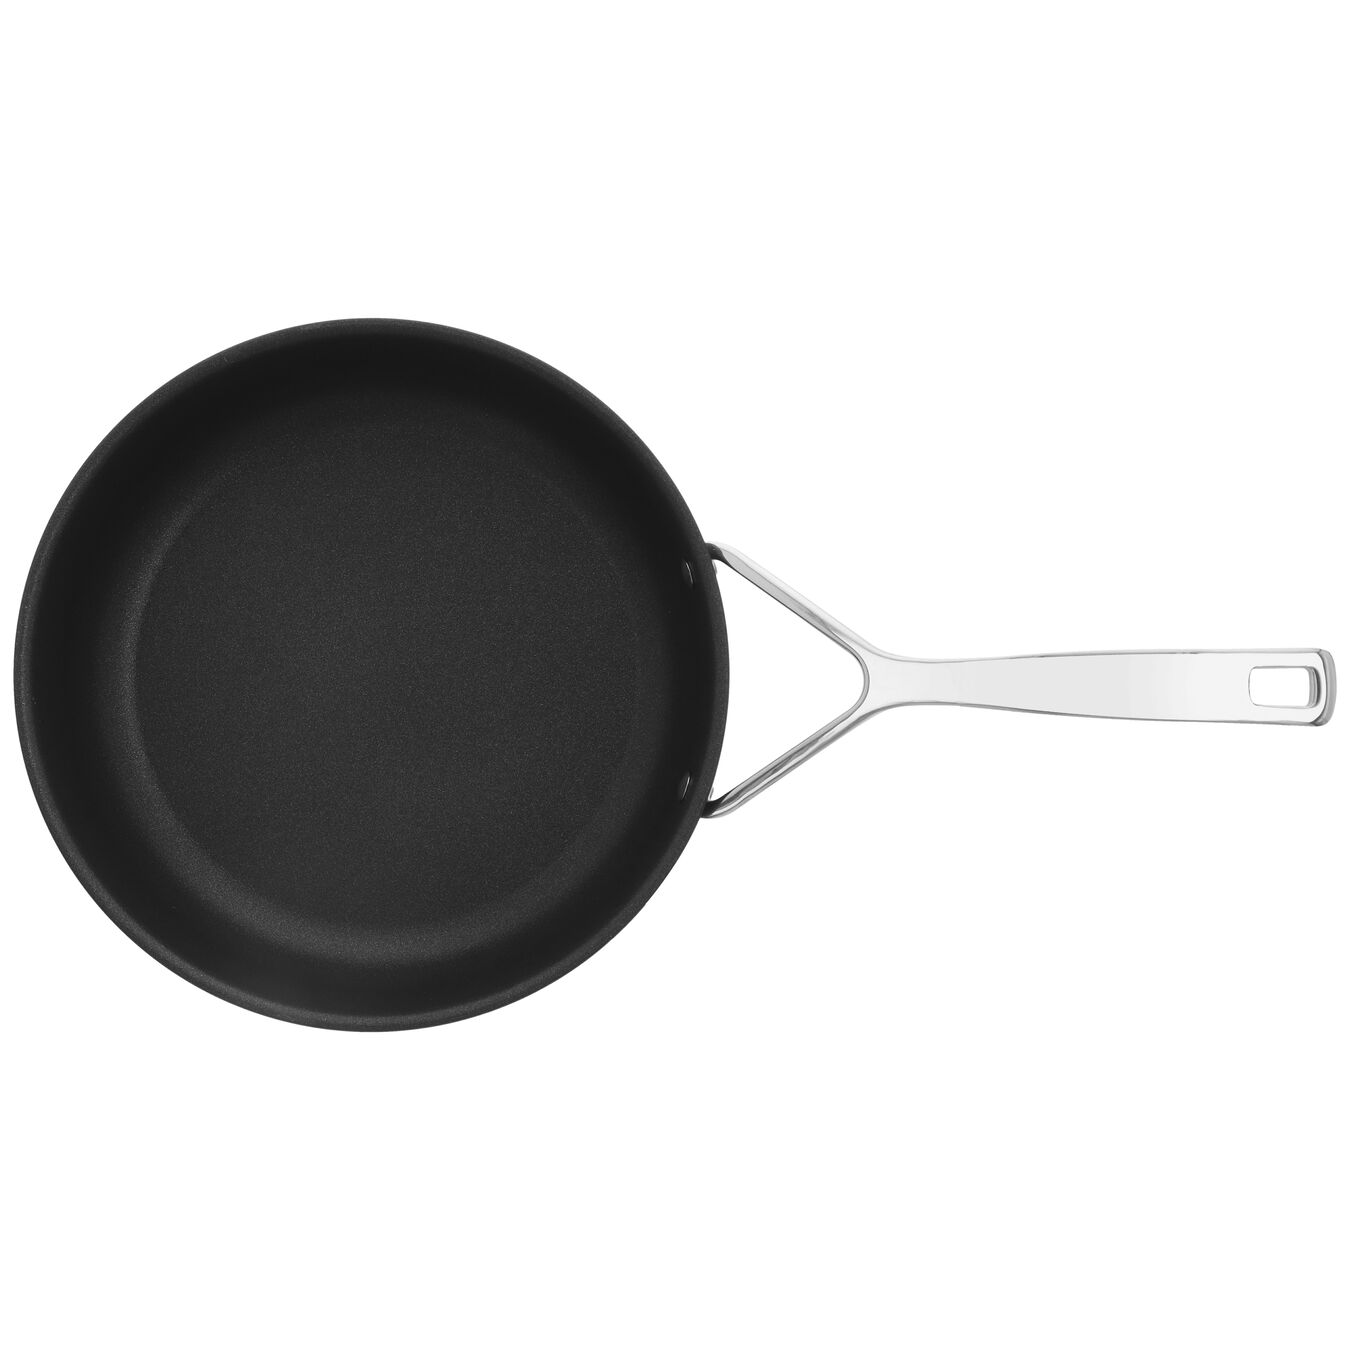 9.5-inch, Aluminium, Non-stick Frying pan high-sided,,large 5